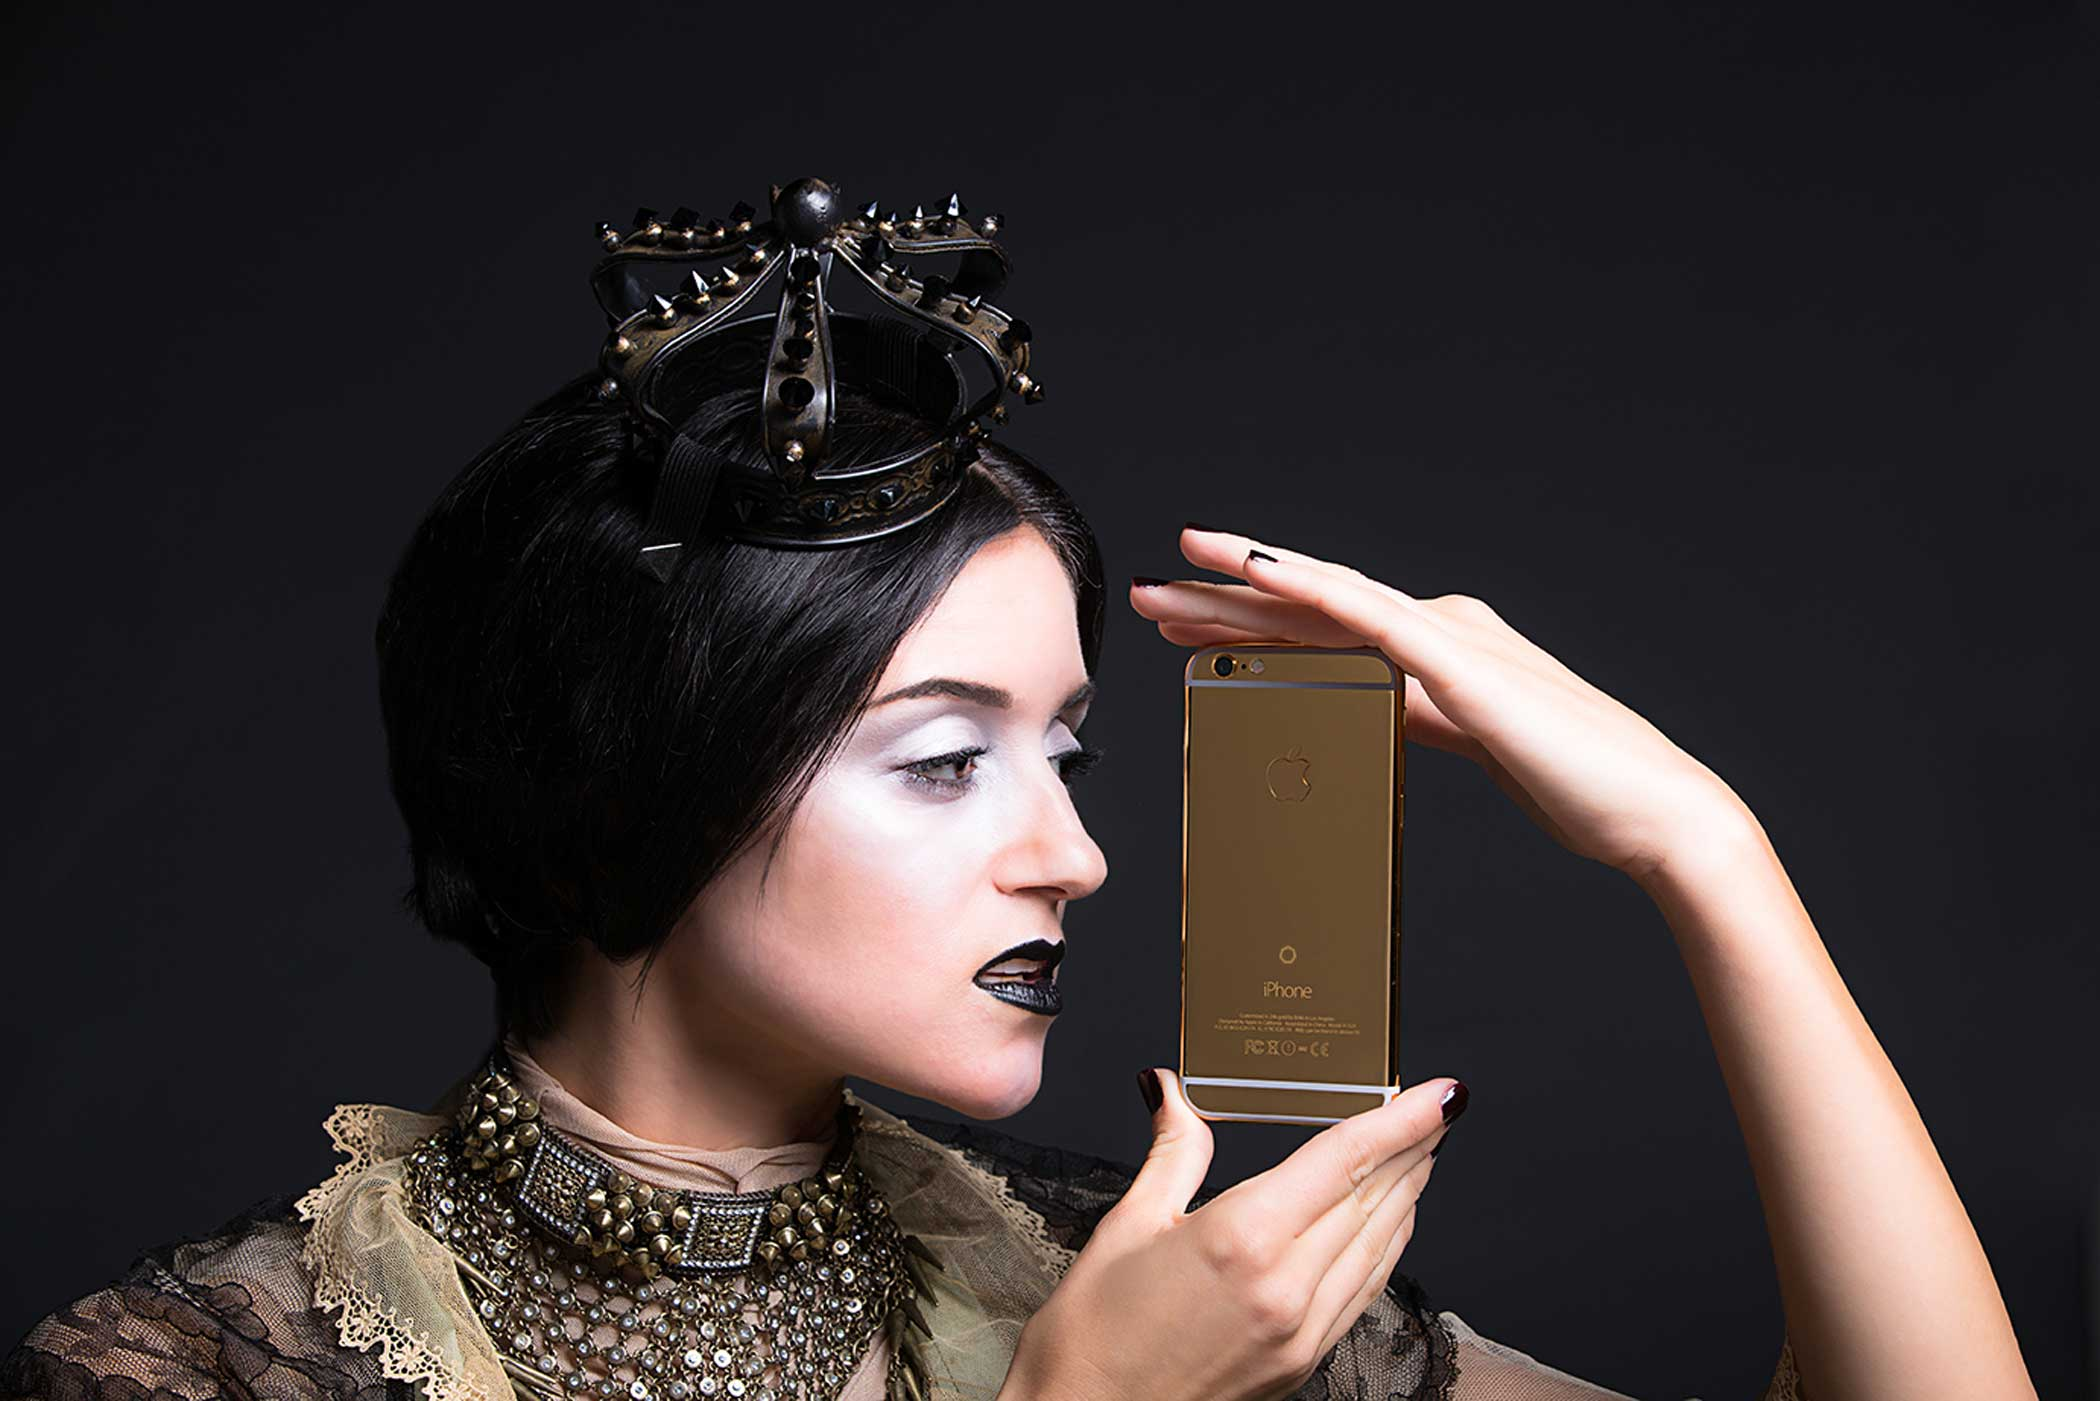 A model gazes sadly at the Lux iPhone 6s in 24-karat yellow gold, the diamond-less and cheapest option among the 5.5 -screen devices ($8,995).